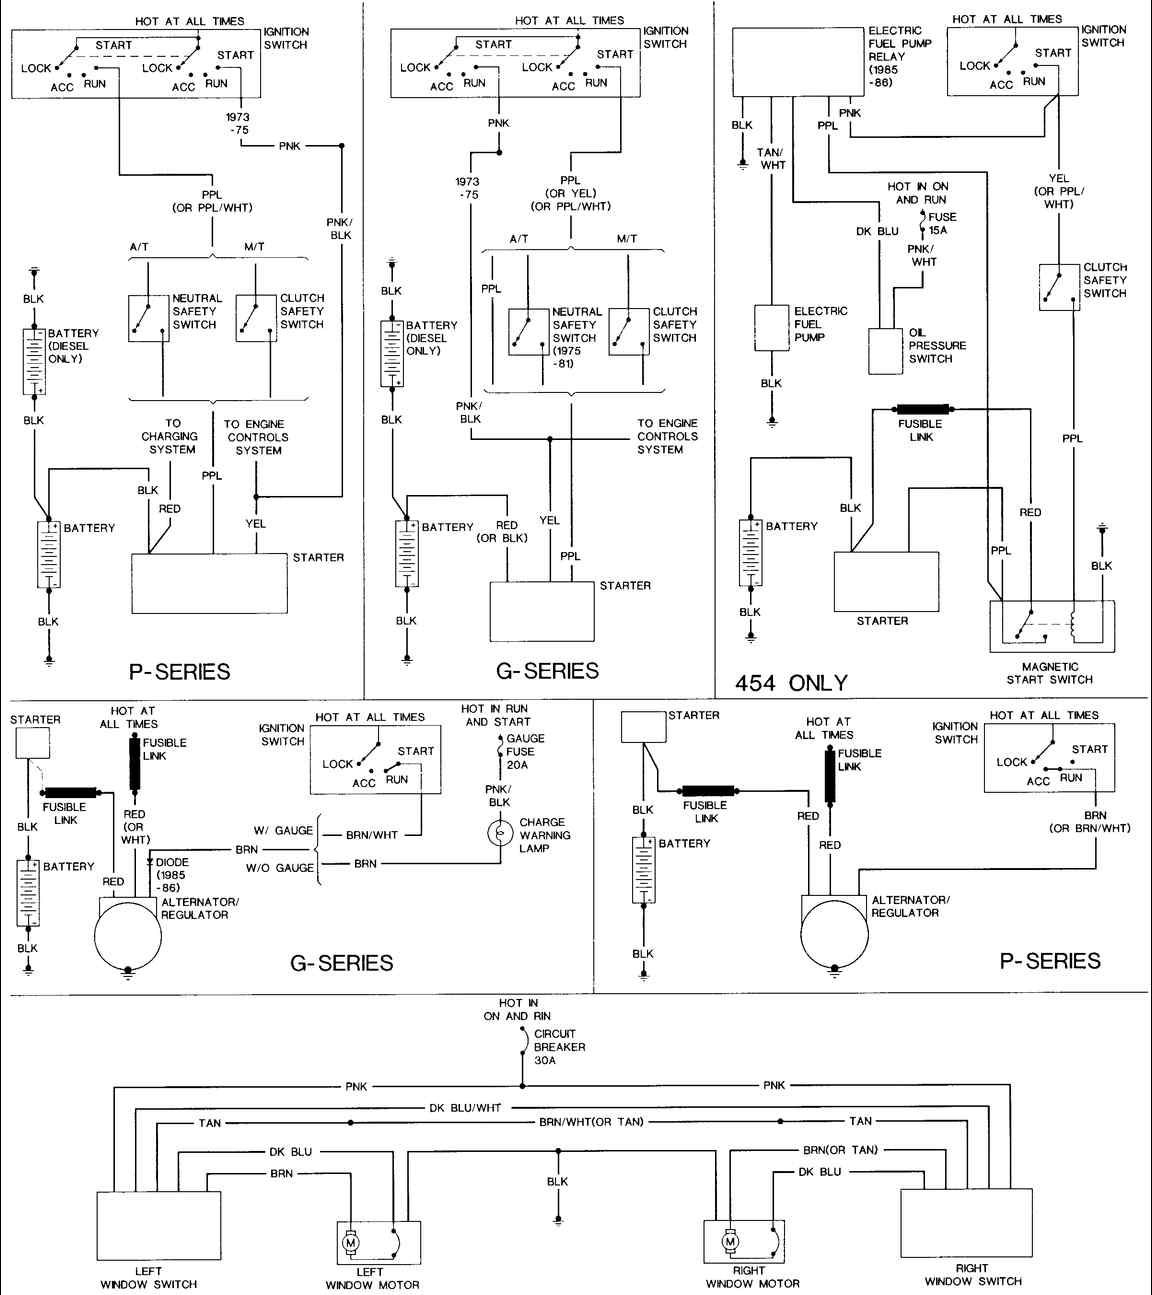 0c73623a181dc376dbb4777e2029d285 85 chevy truck wiring diagram 85 chevy van the steering column 1989 Chevy 1500 Wiring Diagram at eliteediting.co